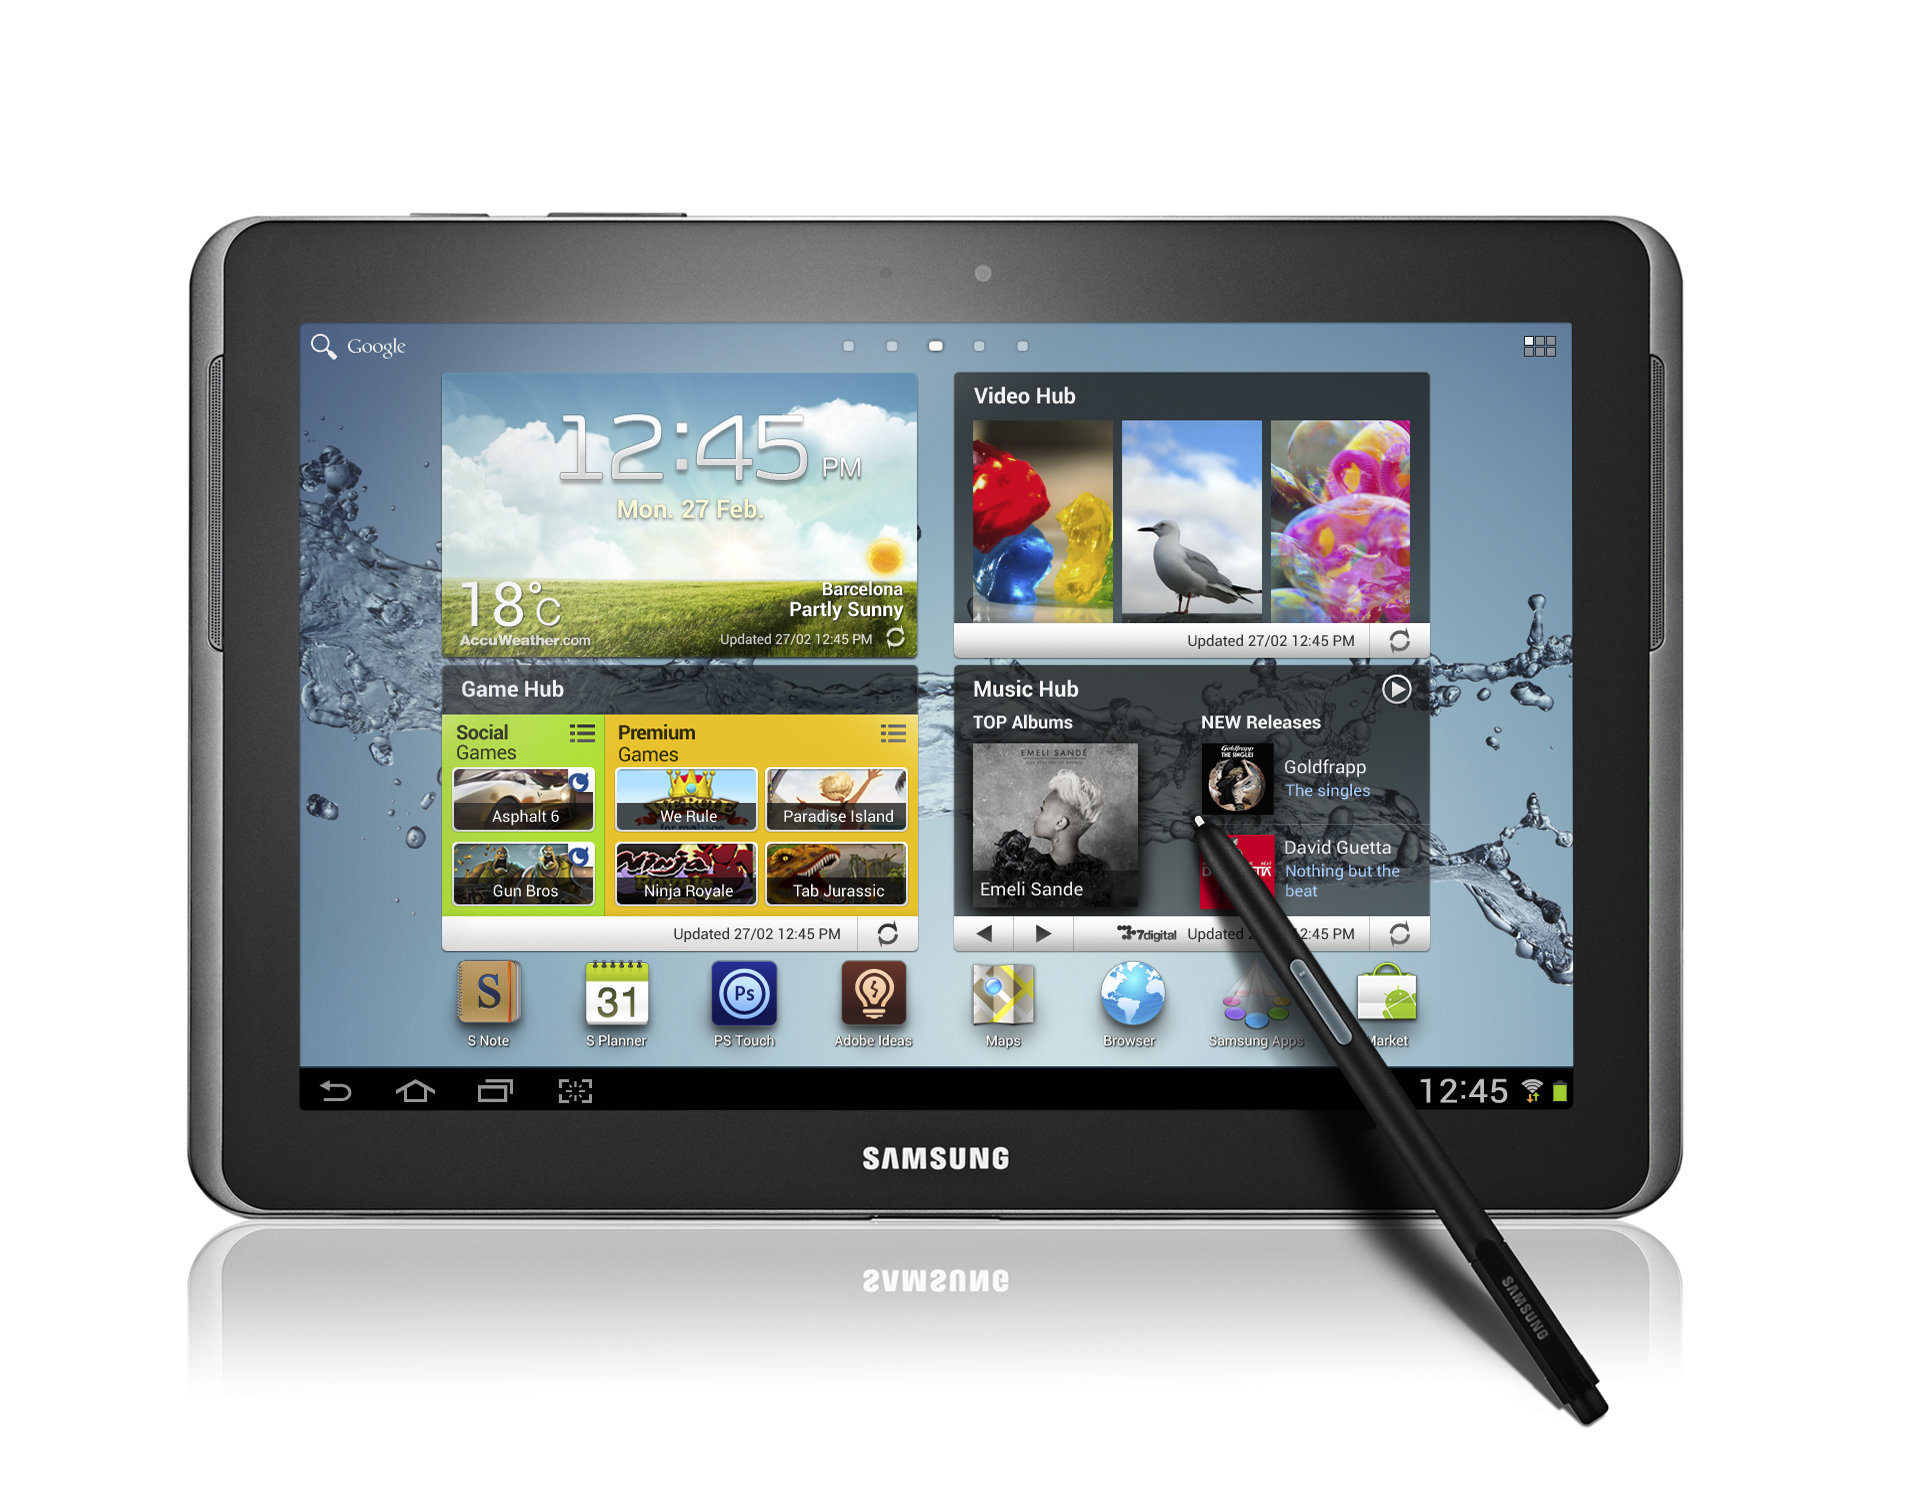 galaxy note 10 1 - Samsung Galaxy Note 10.1